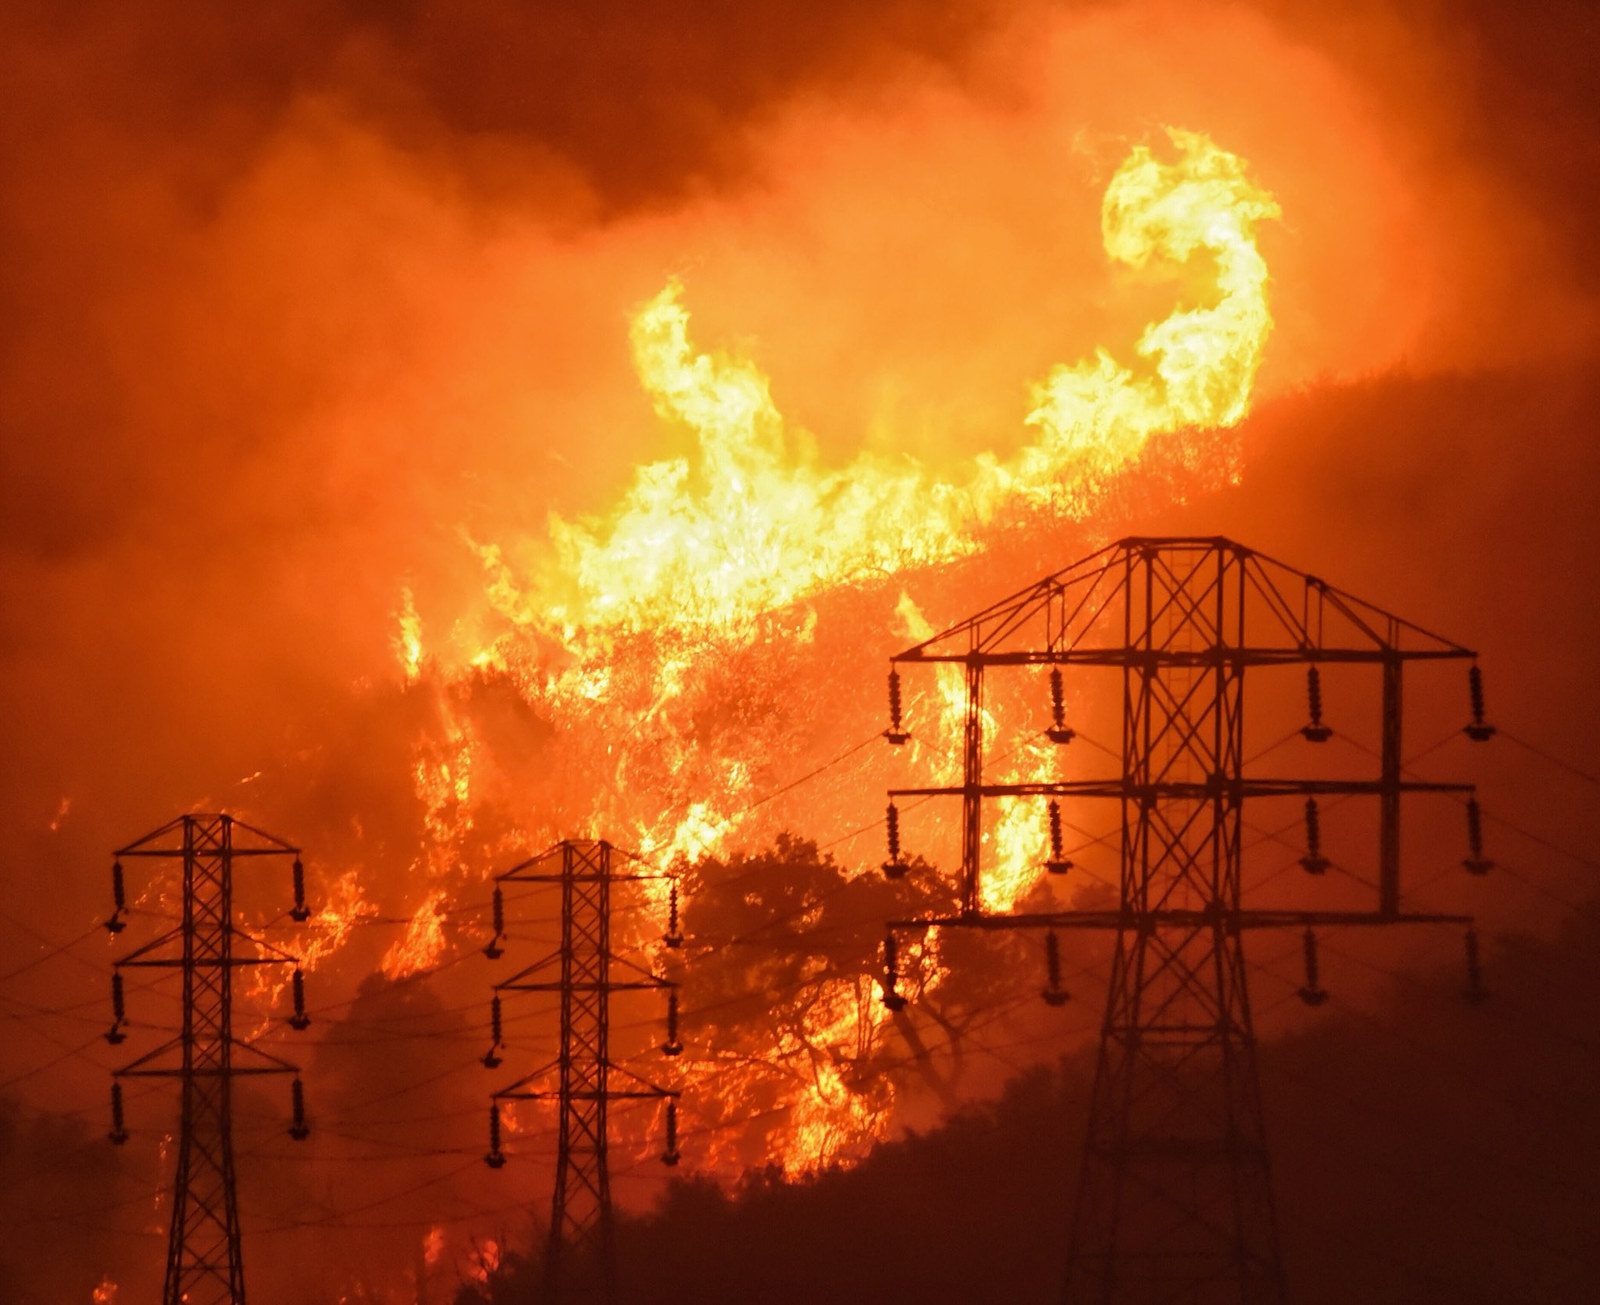 FILE - In this Dec. 16, 2017, file photo provided by the Santa Barbara County Fire Department, flames burn near power lines in Sycamore Canyon near West Mountain Drive in Montecito, Calif. State fire officials blamed power lines coming into contact with trees for sparking four Northern California wildfires last October that incinerated more than 130 buildings.